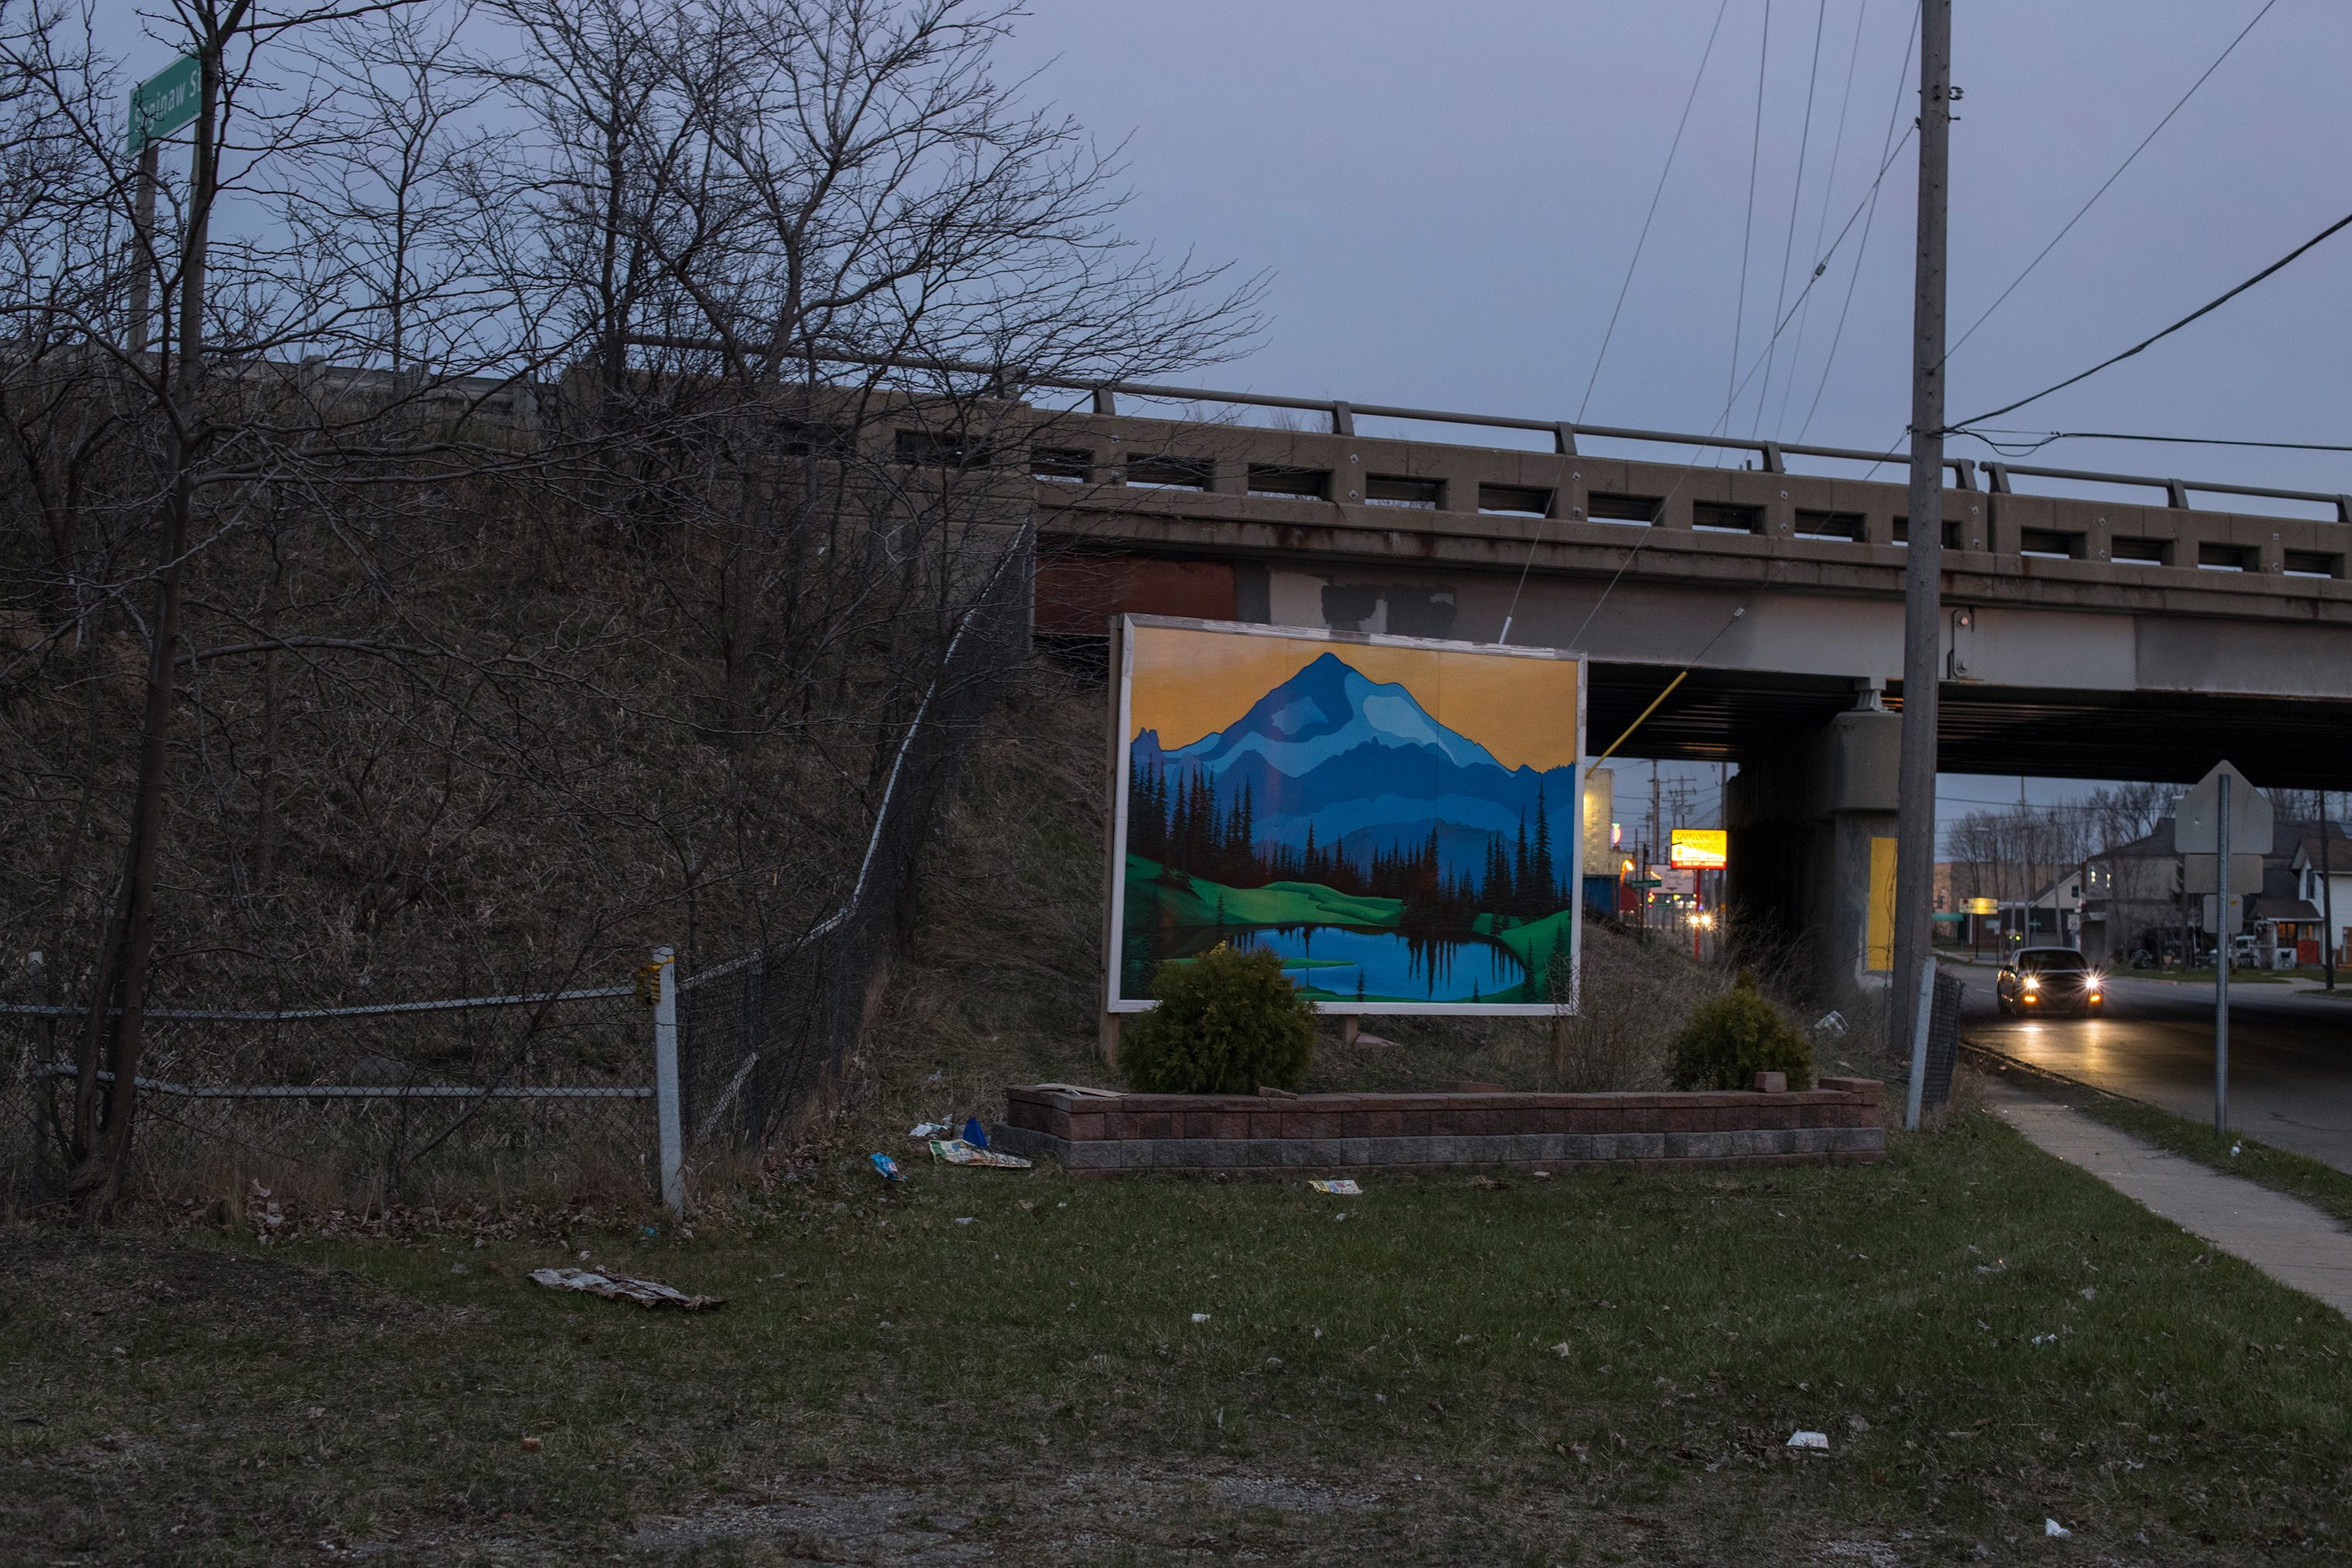 A picturesque mural sits on the side of Saginaw Street on the south side of Flint.